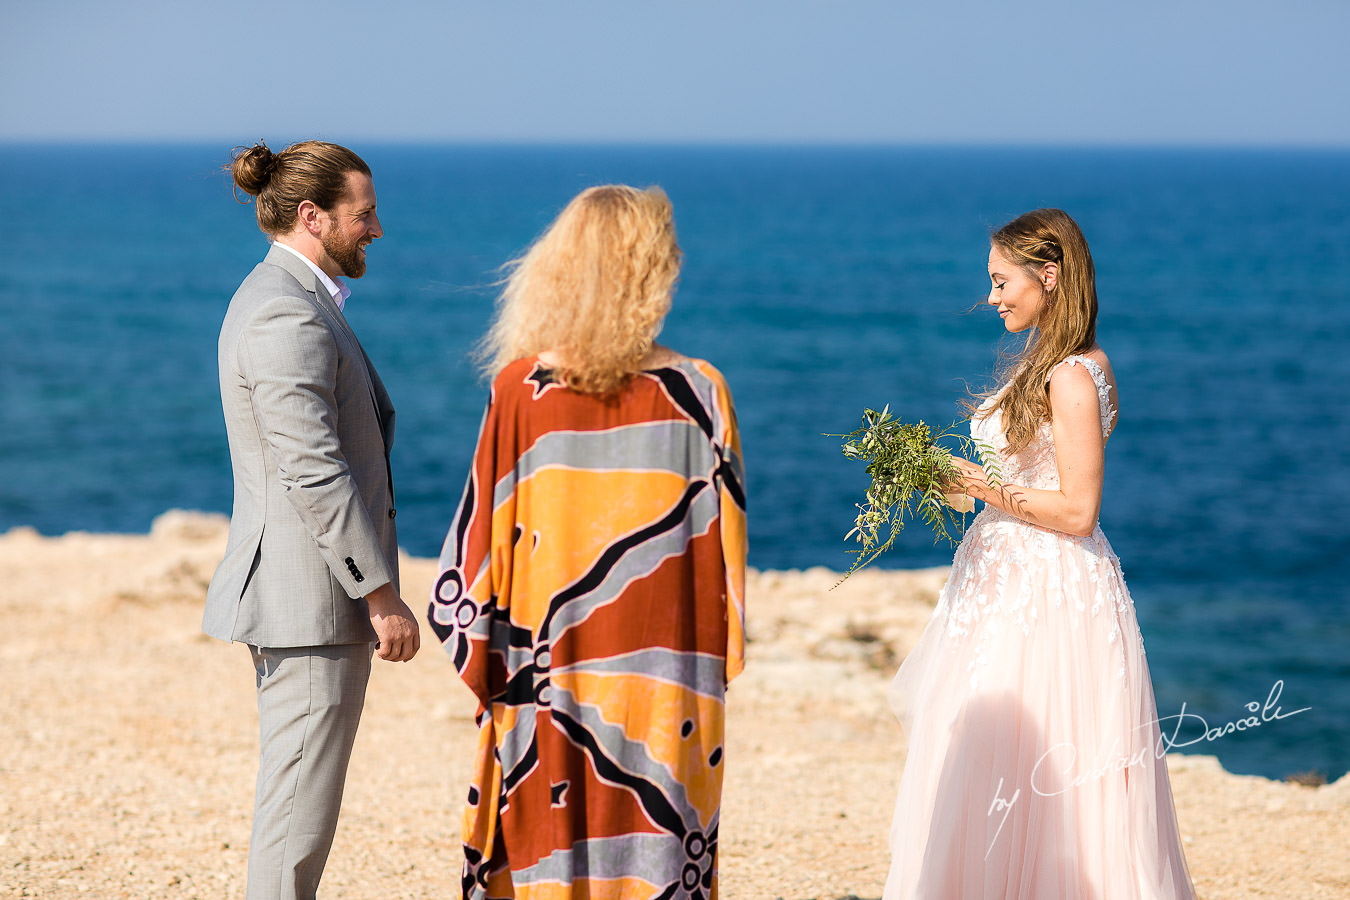 The bride and groom changing vows, moments captured at a Shamanic Wedding Ceremony by Cyprus Wedding Photographer Cristian Dascalu.